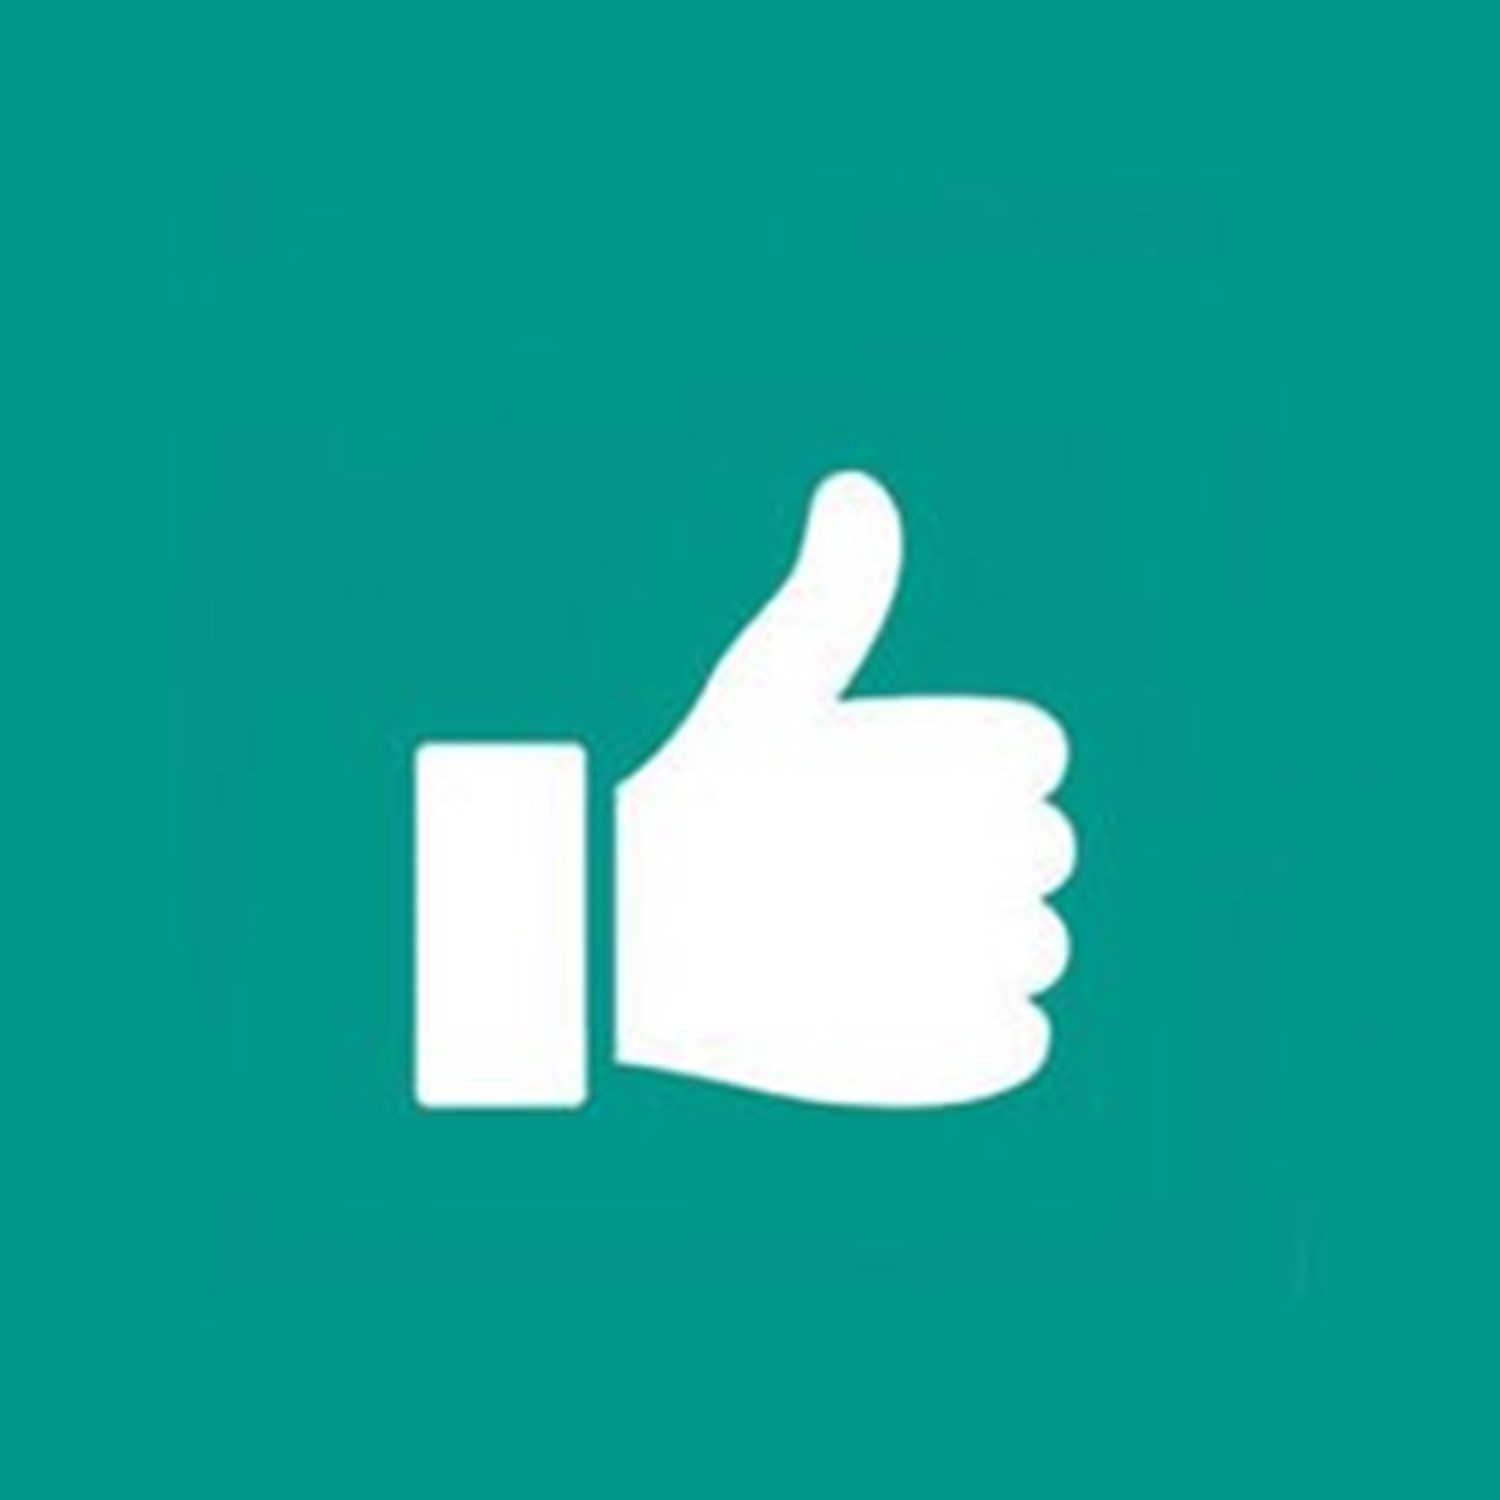 White thumbs up on green background